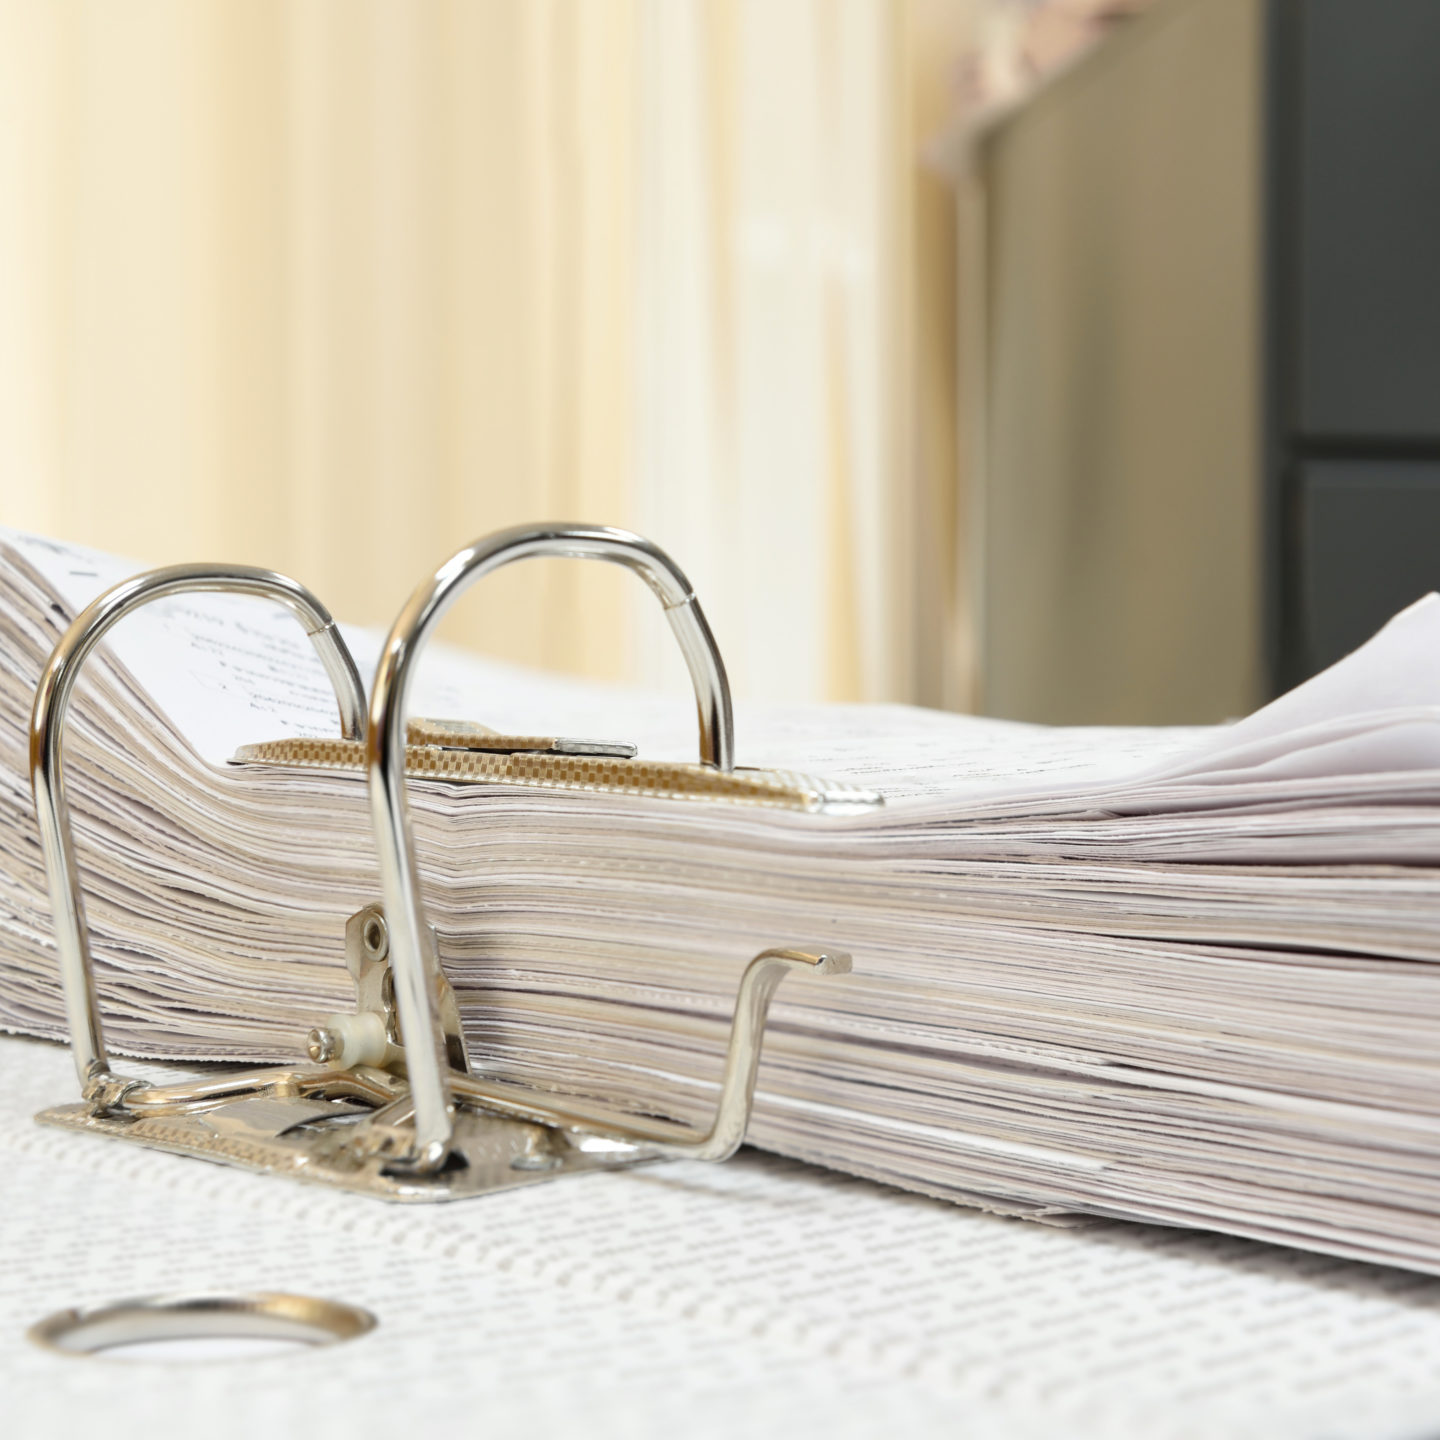 Papers with binder clips